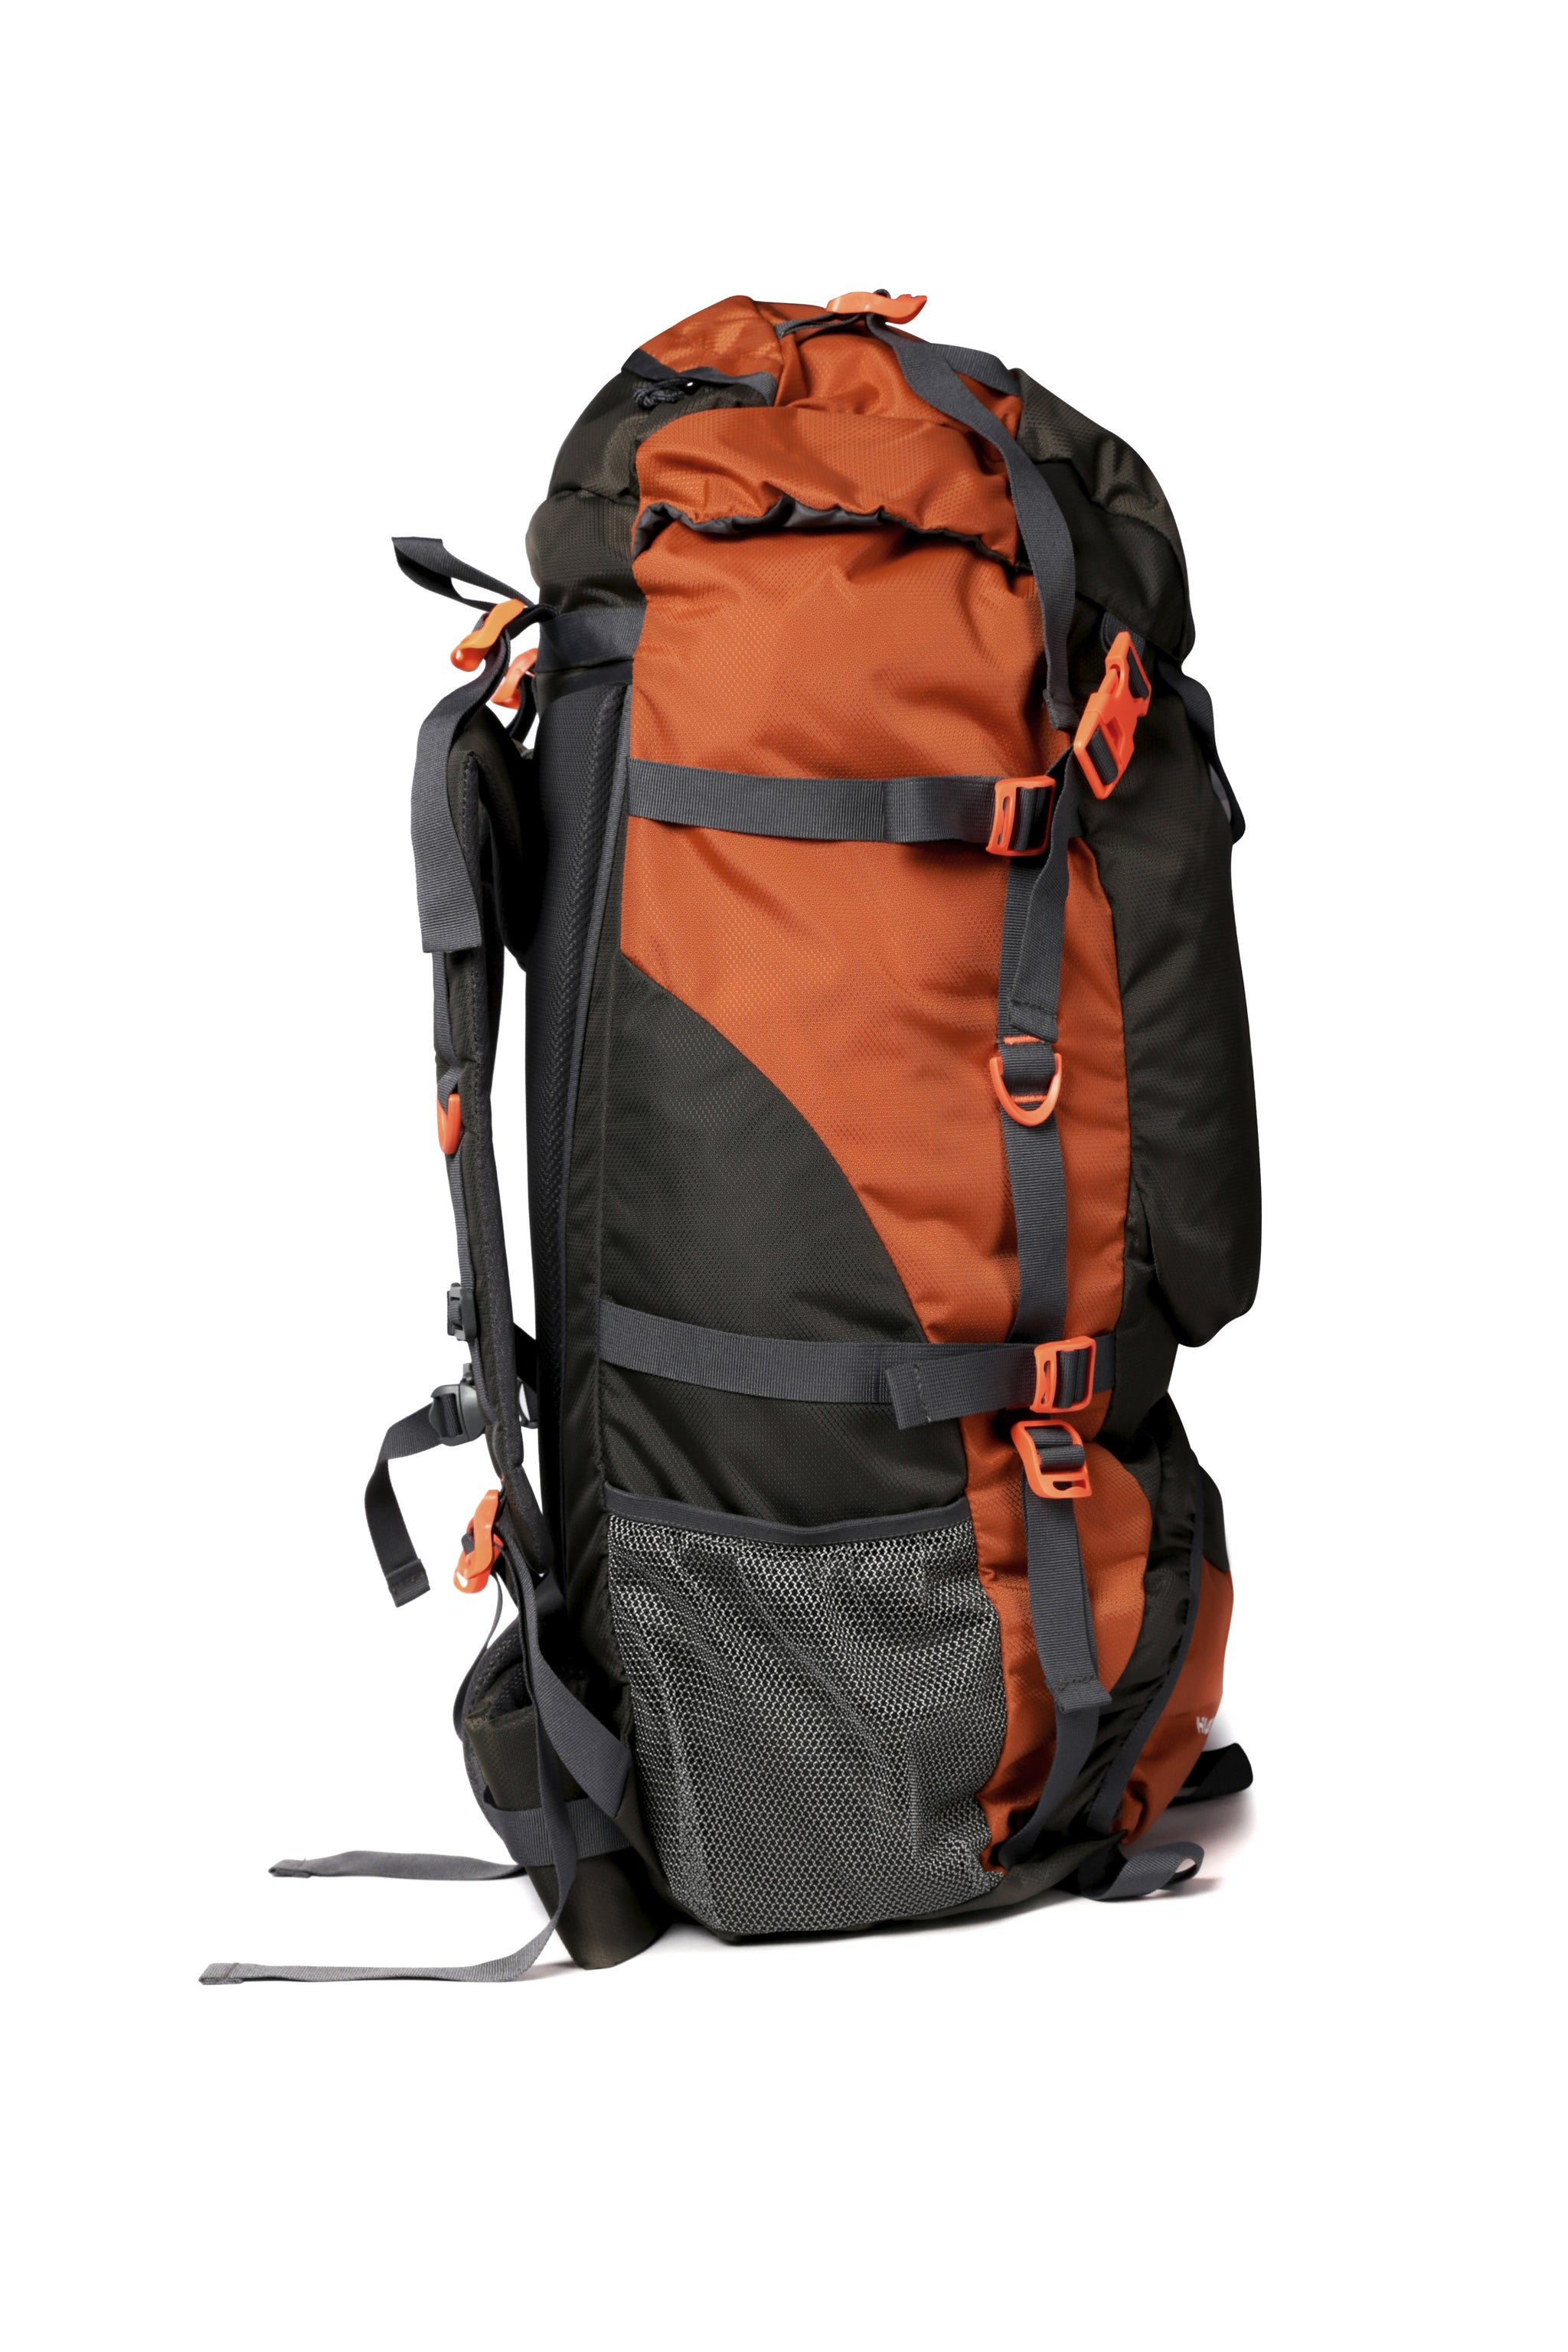 F Gear Hunter 75 liter Rucksack (Grey Orange)